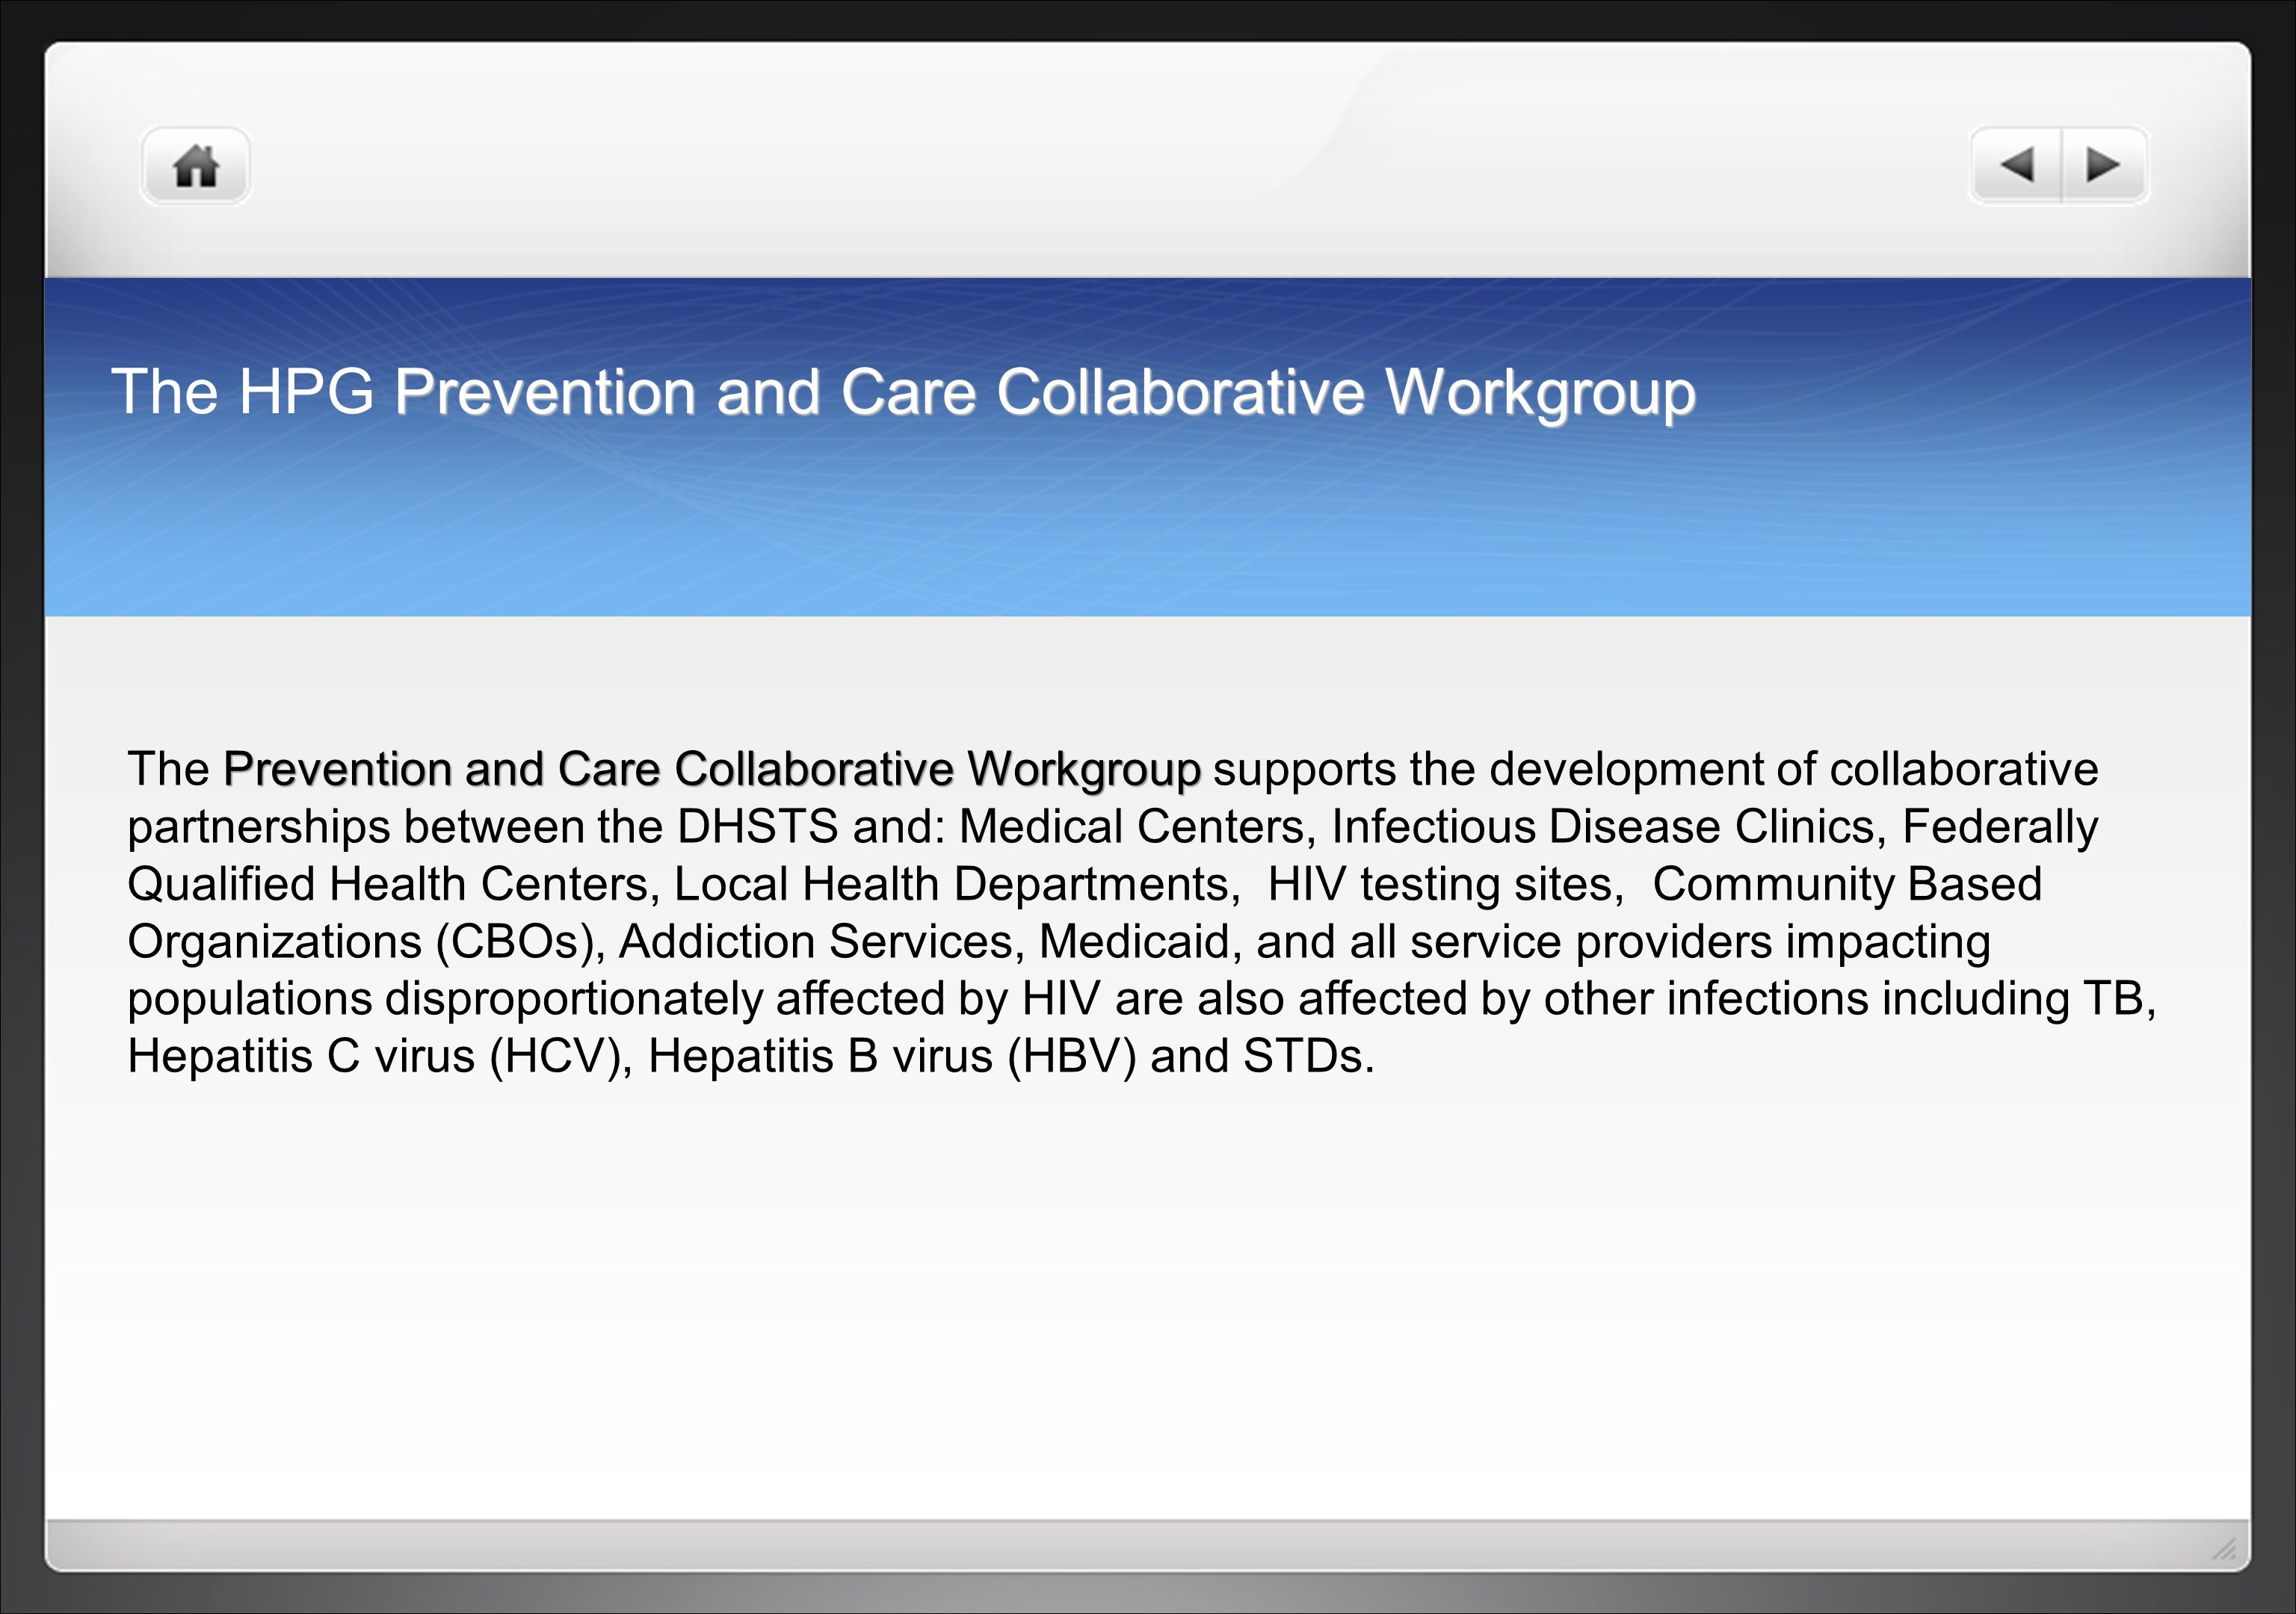 Prevention and Care Collaborative Workgroup The HPG Prevention and Care Collaborative Workgroup Prevention and Care Collaborative Workgroup The Prevention and Care Collaborative Workgroup supports the development of collaborative partnerships between the DHSTS and: Medical Centers, Infectious Disease Clinics, Federally Qualified Health Centers, Local Health Departments, HIV testing sites, Community Based Organizations (CBOs), Addiction Services, Medicaid, and all service providers impacting populations disproportionately affected by HIV are also affected by other infections including TB, Hepatitis C virus (HCV), Hepatitis B virus (HBV) and STDs.